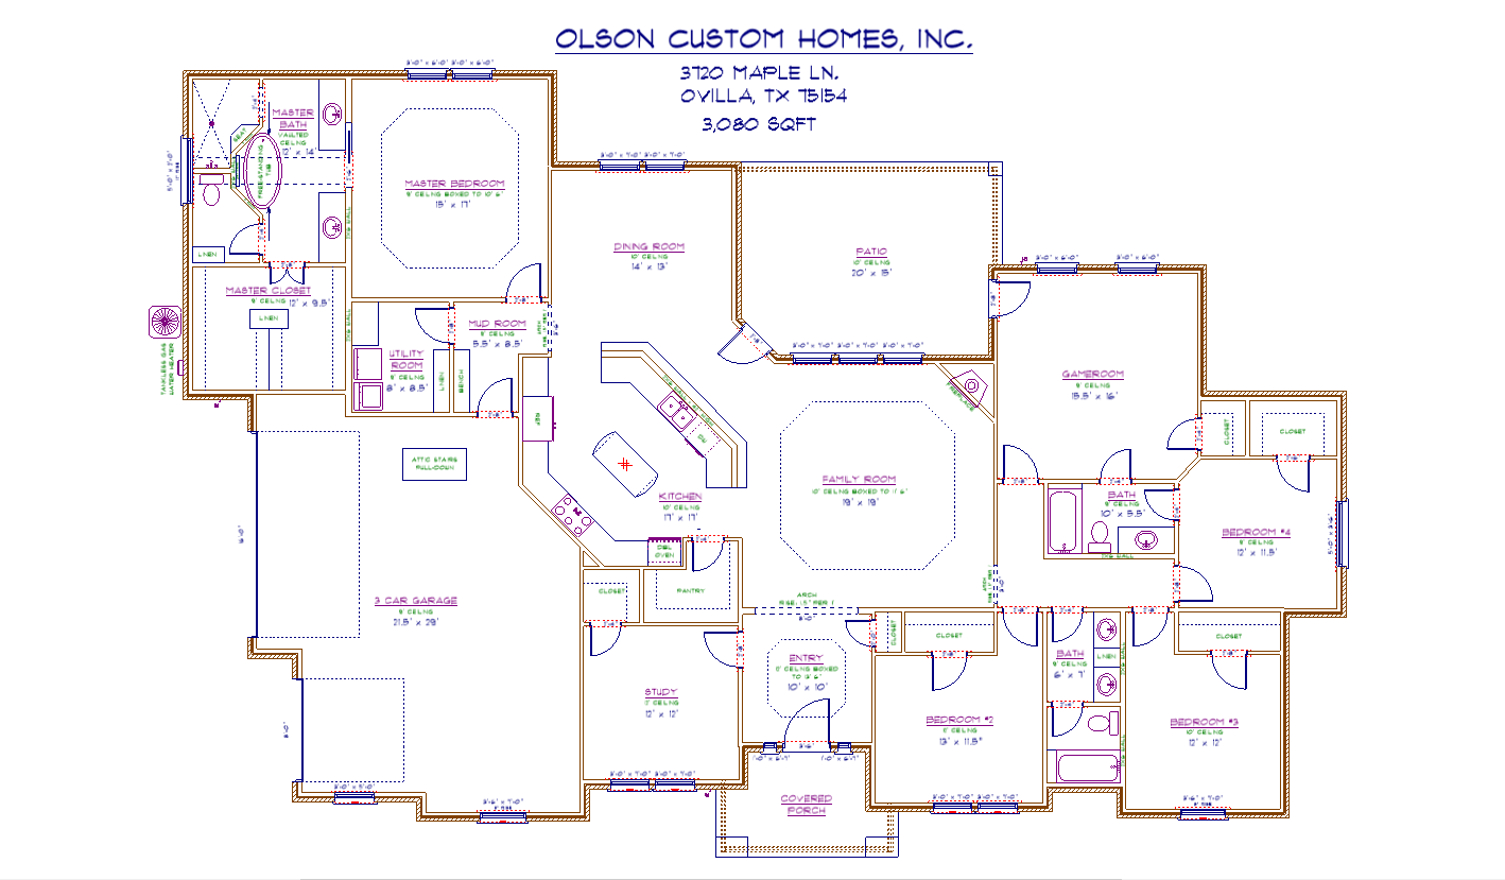 3720 Maple Ln - Port Floorplan